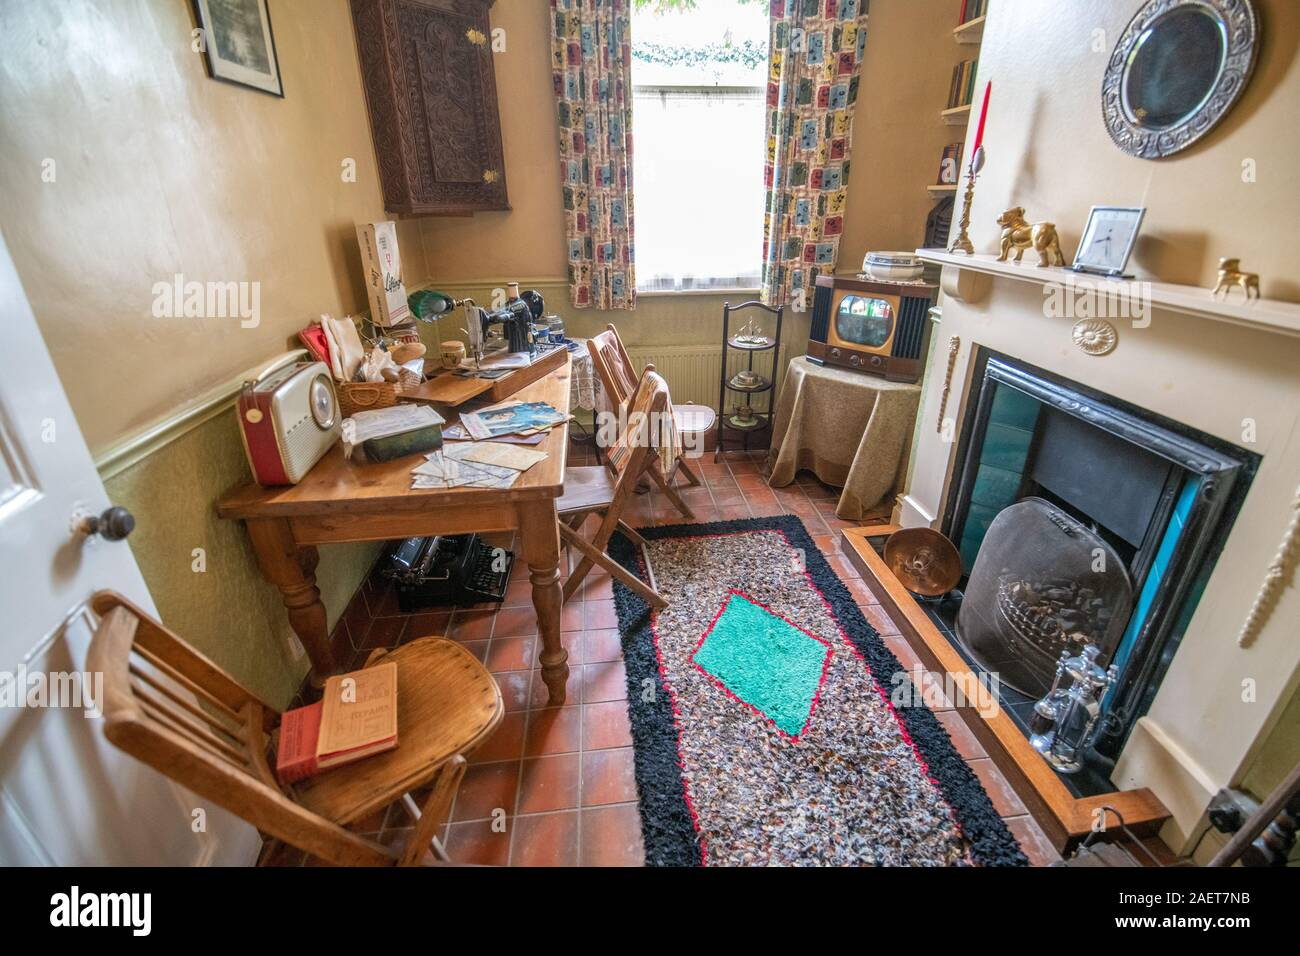 World Of James Herriot Thirsk Uk Stock Photo Alamy